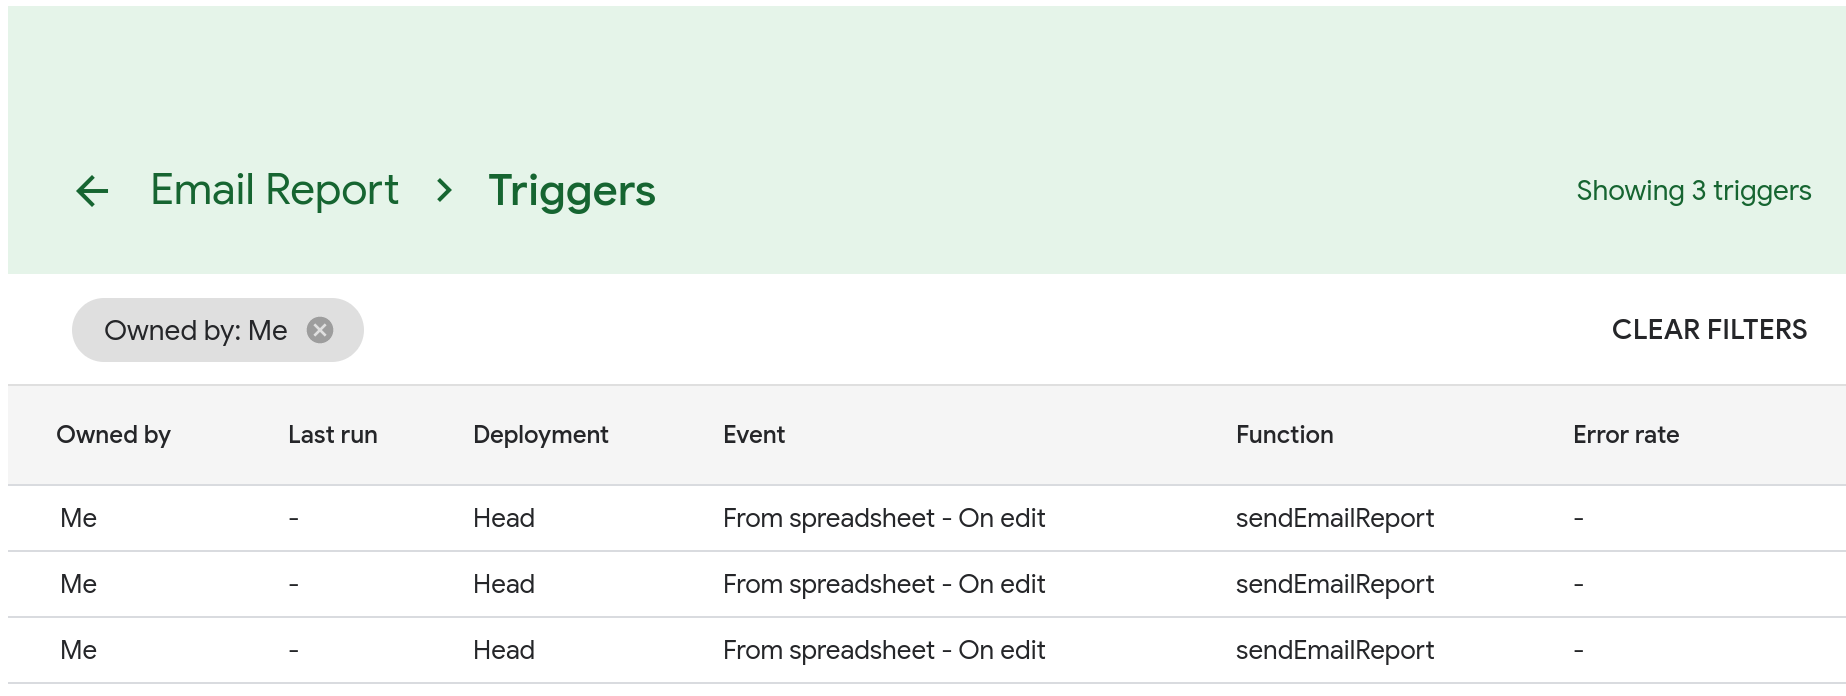 A screenshot of the Triggers page that lists three identical Edit triggers.